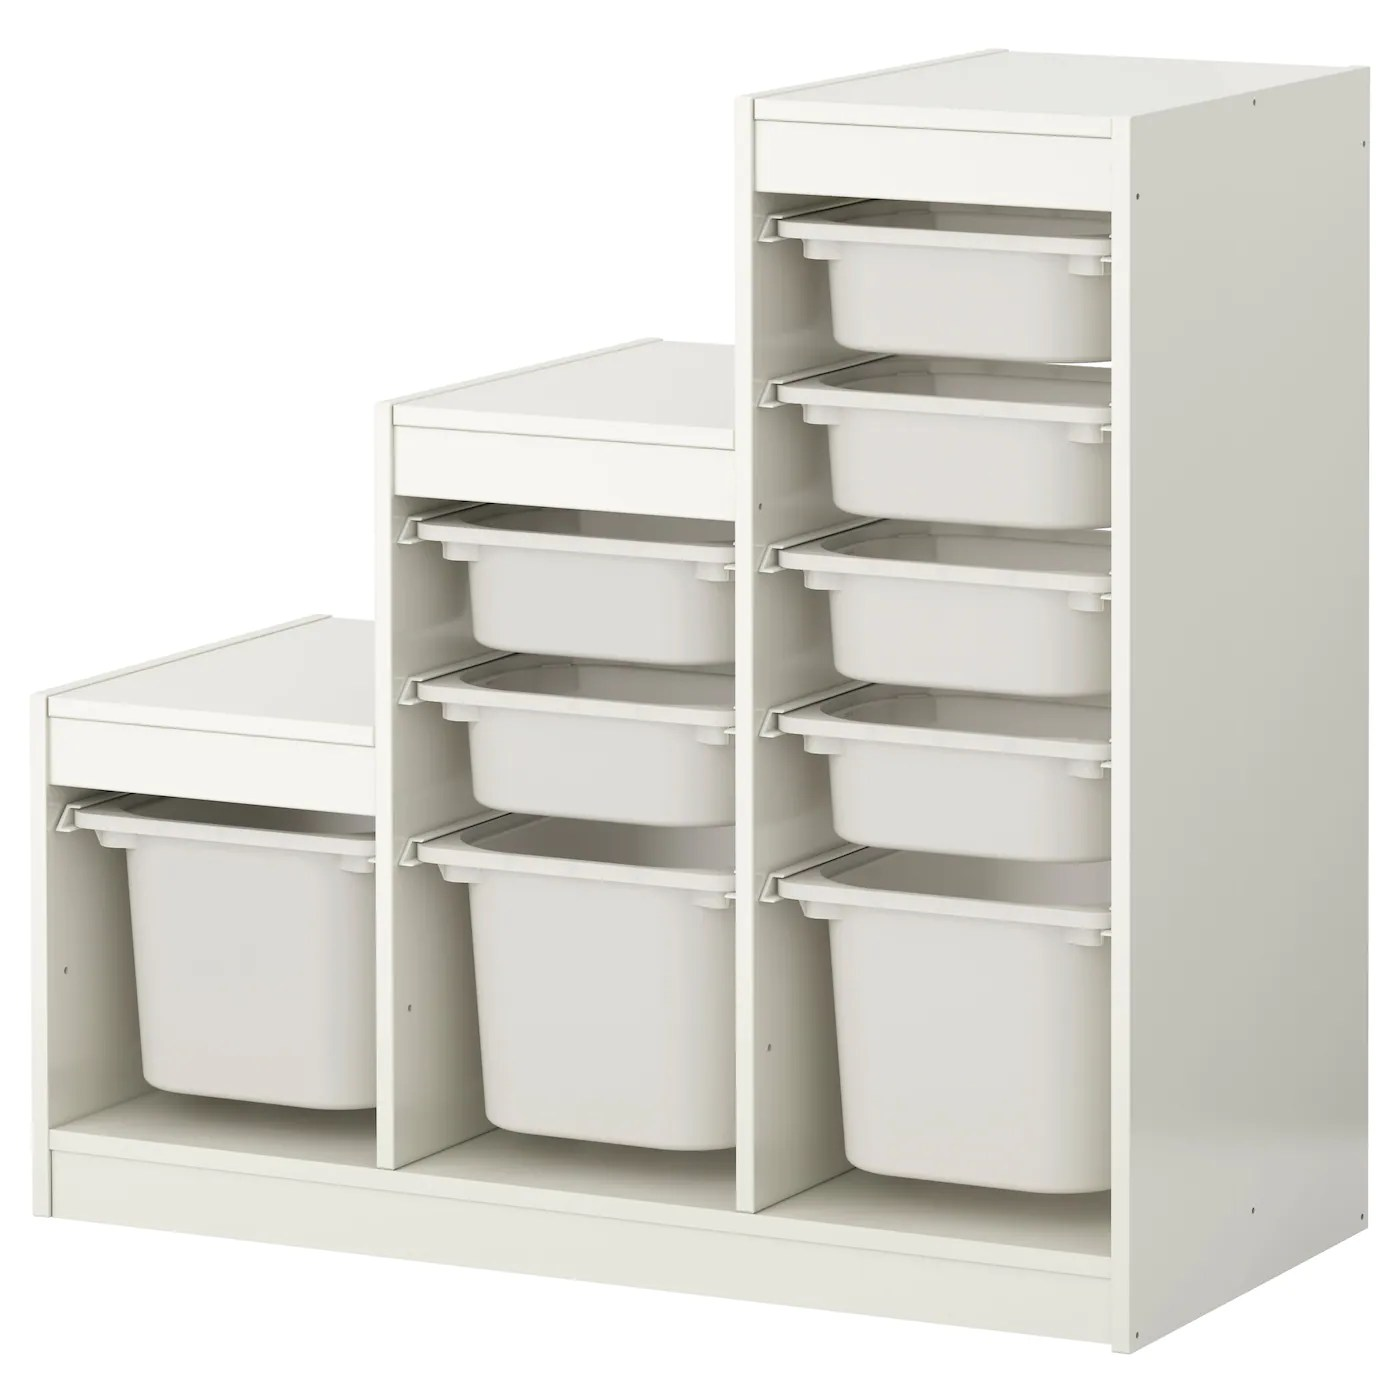 ikea childrens chair 2 tiffany blue wedding covers trofast storage combination with boxes white 99 x 44